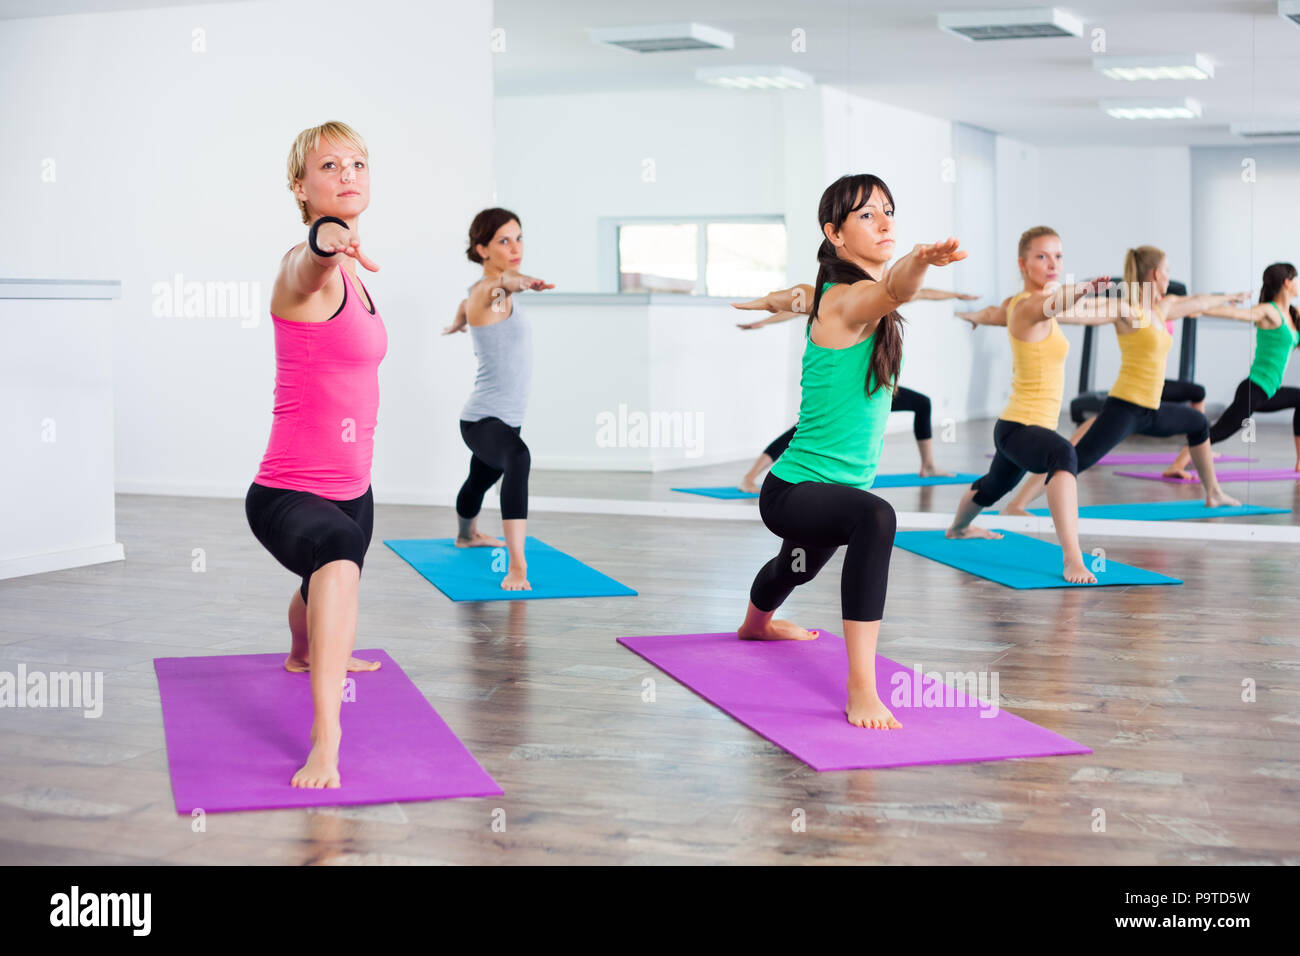 Four girls practicing yoga, Virabhadrasana / Warrior pose - Stock Image